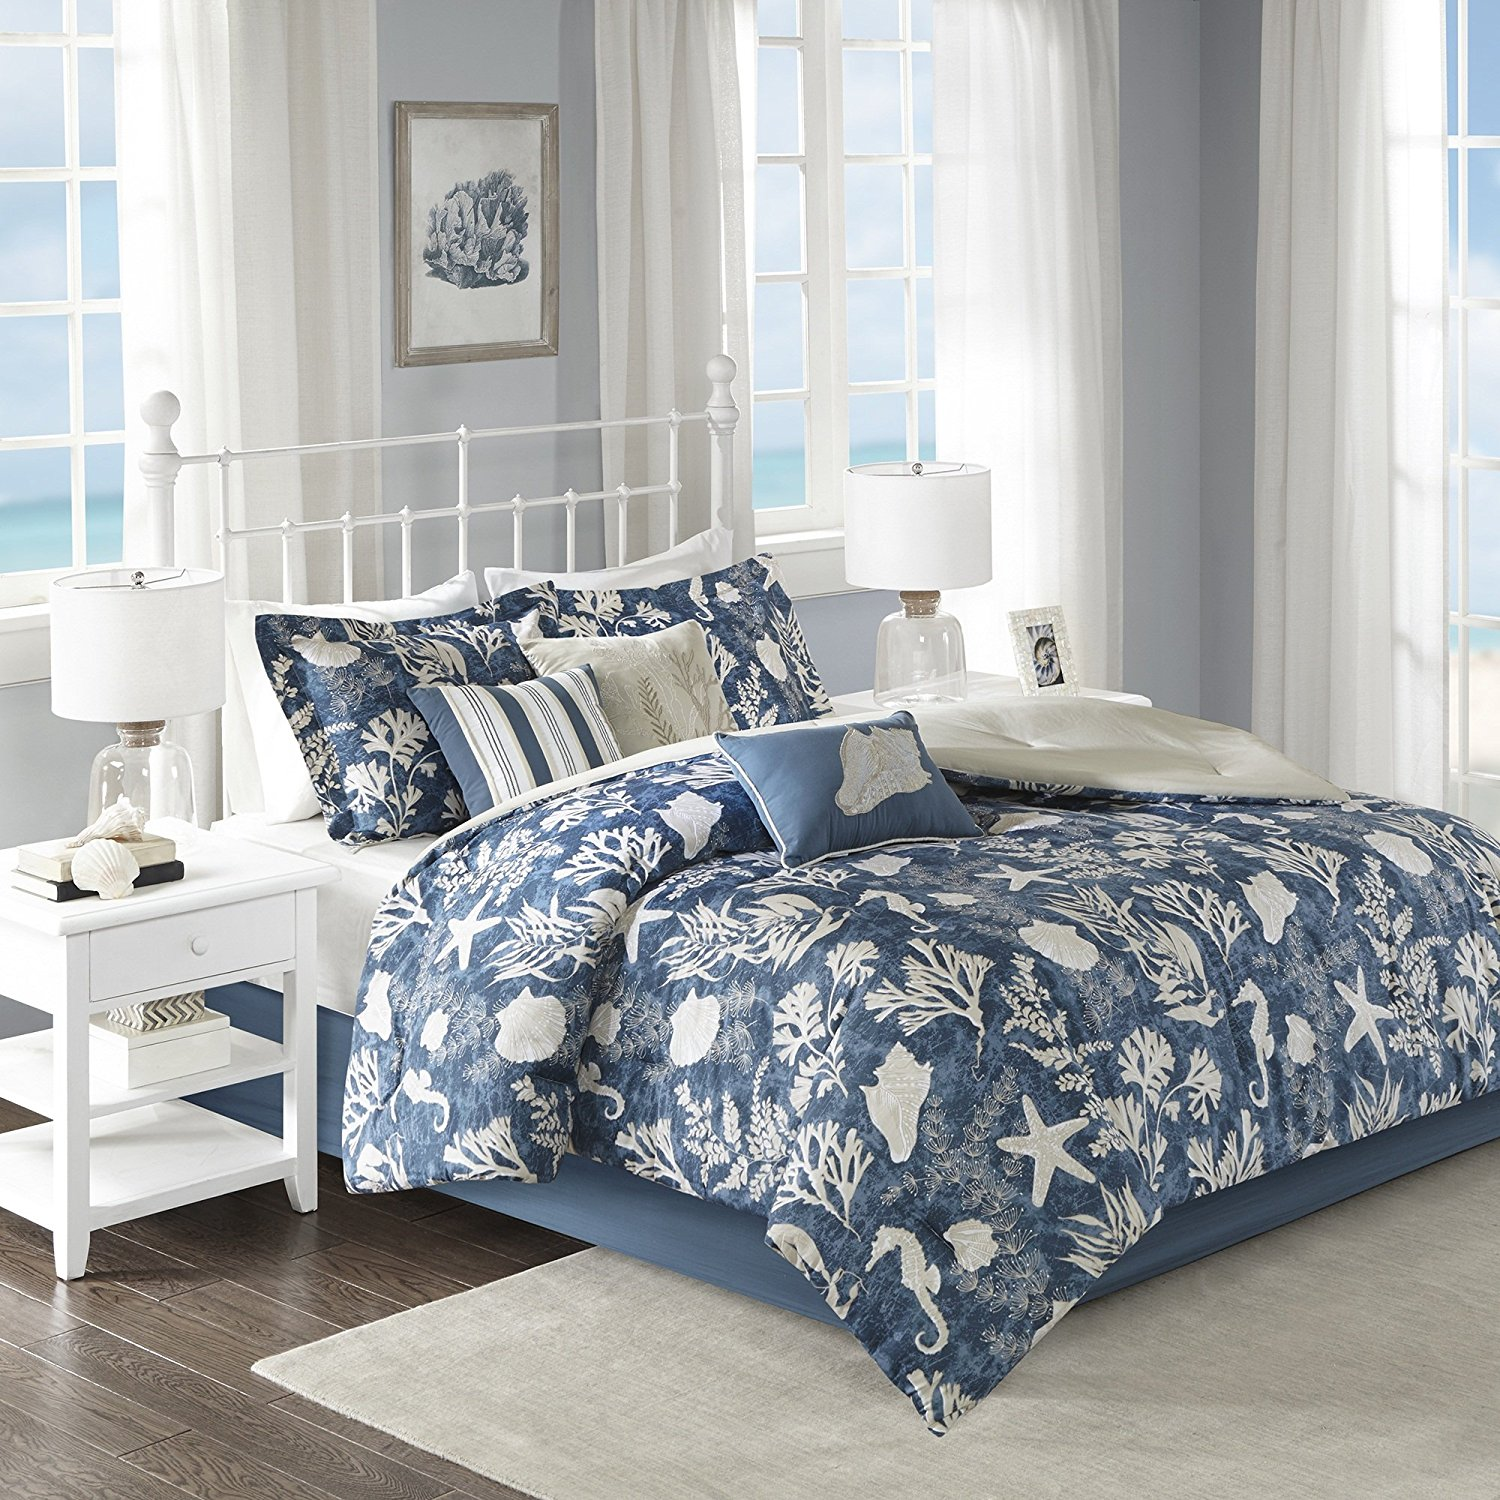 7 Piece Modern Mid-Century Coastal Pattern Comforter Set Cal King, Allover Motifs Sea Horse, Star Fish Printed Design, Casual Novelty Seaside Themed, Gorgeous Nature Look Bedding, Navy, Taupe Color